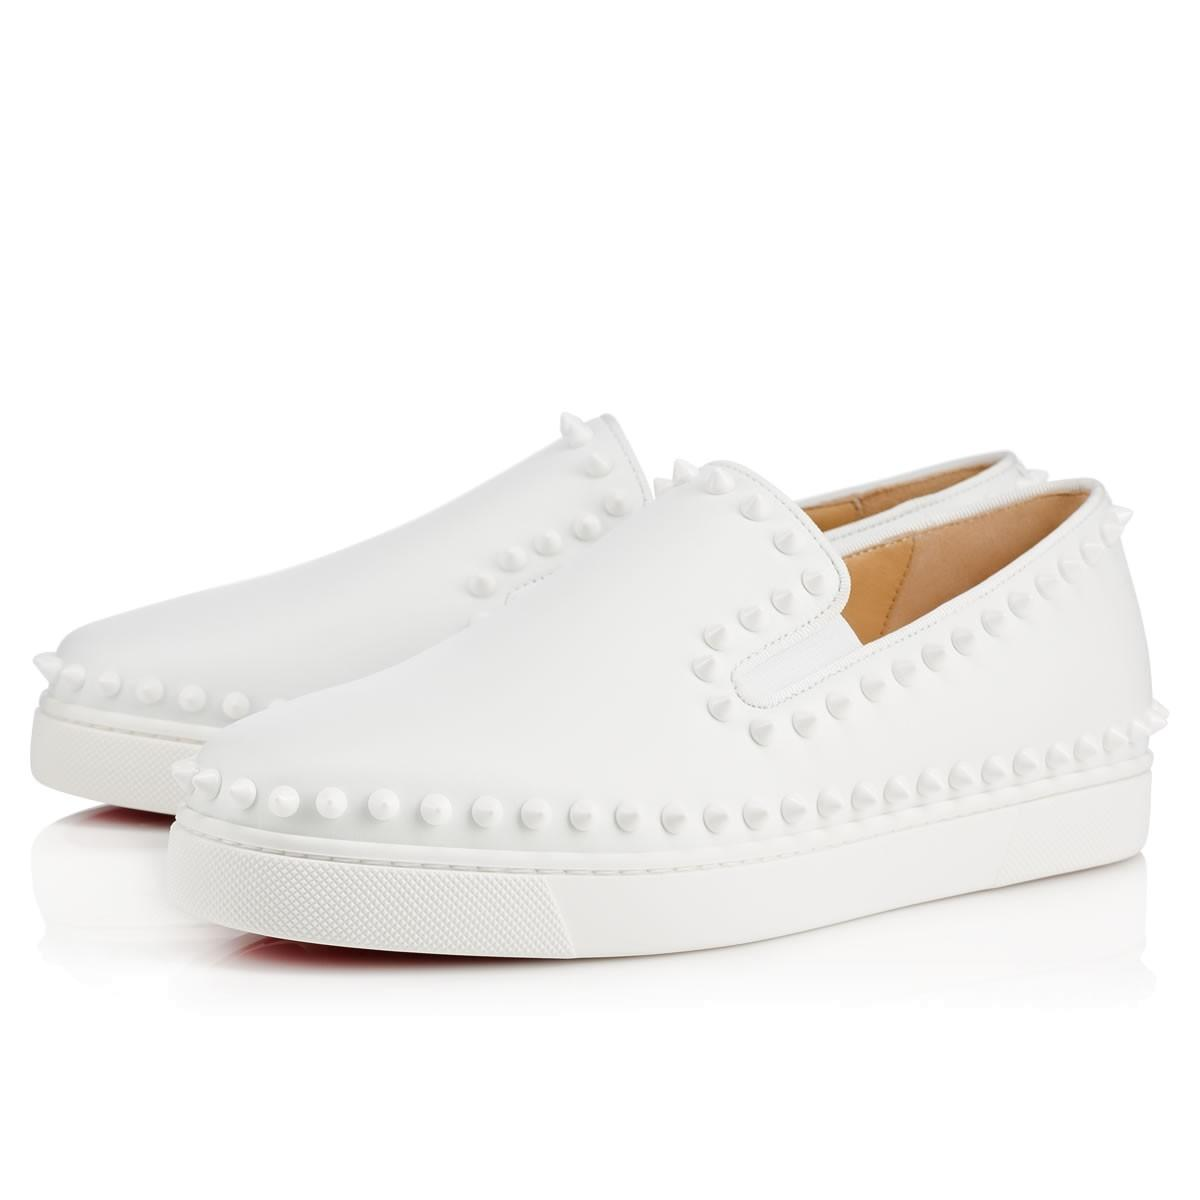 fca8a0c8bffe Christian Louboutin Pik Boat Spiked Textured-Leather Slip-On Sneakers In  White